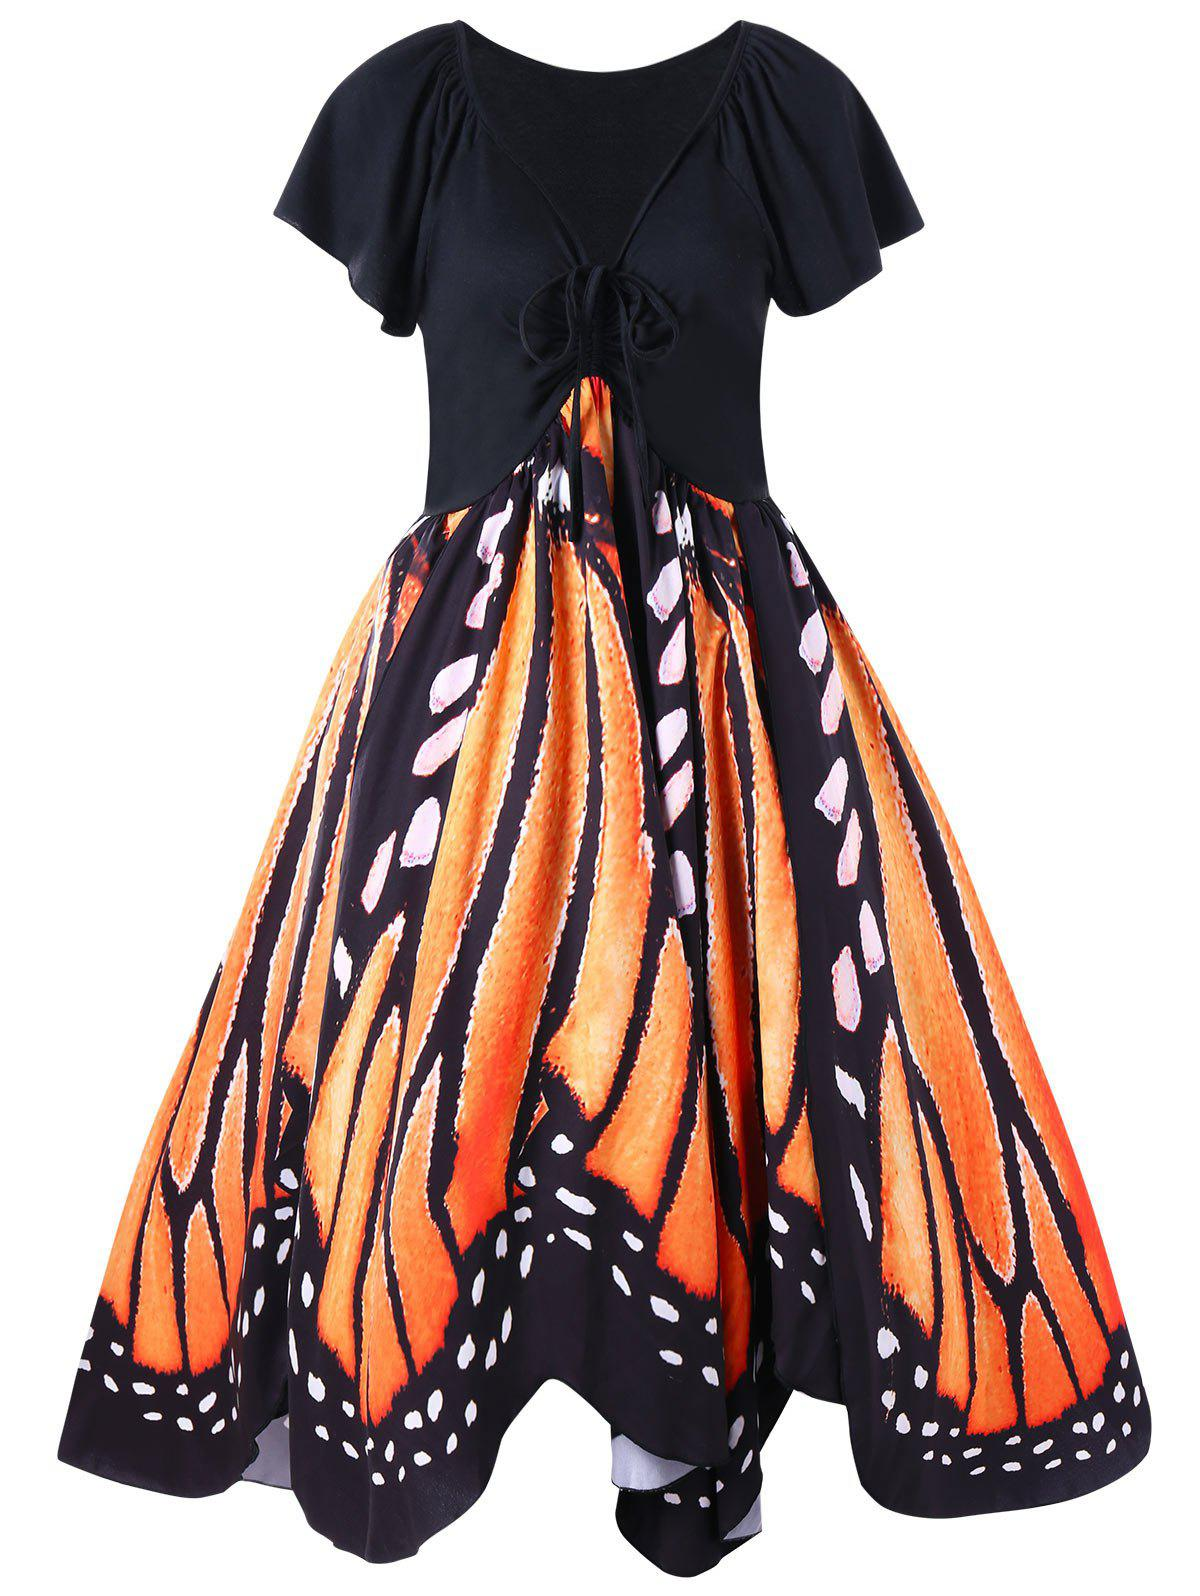 Chic Plus Size Low Cut Butterfly Print Swing Dress